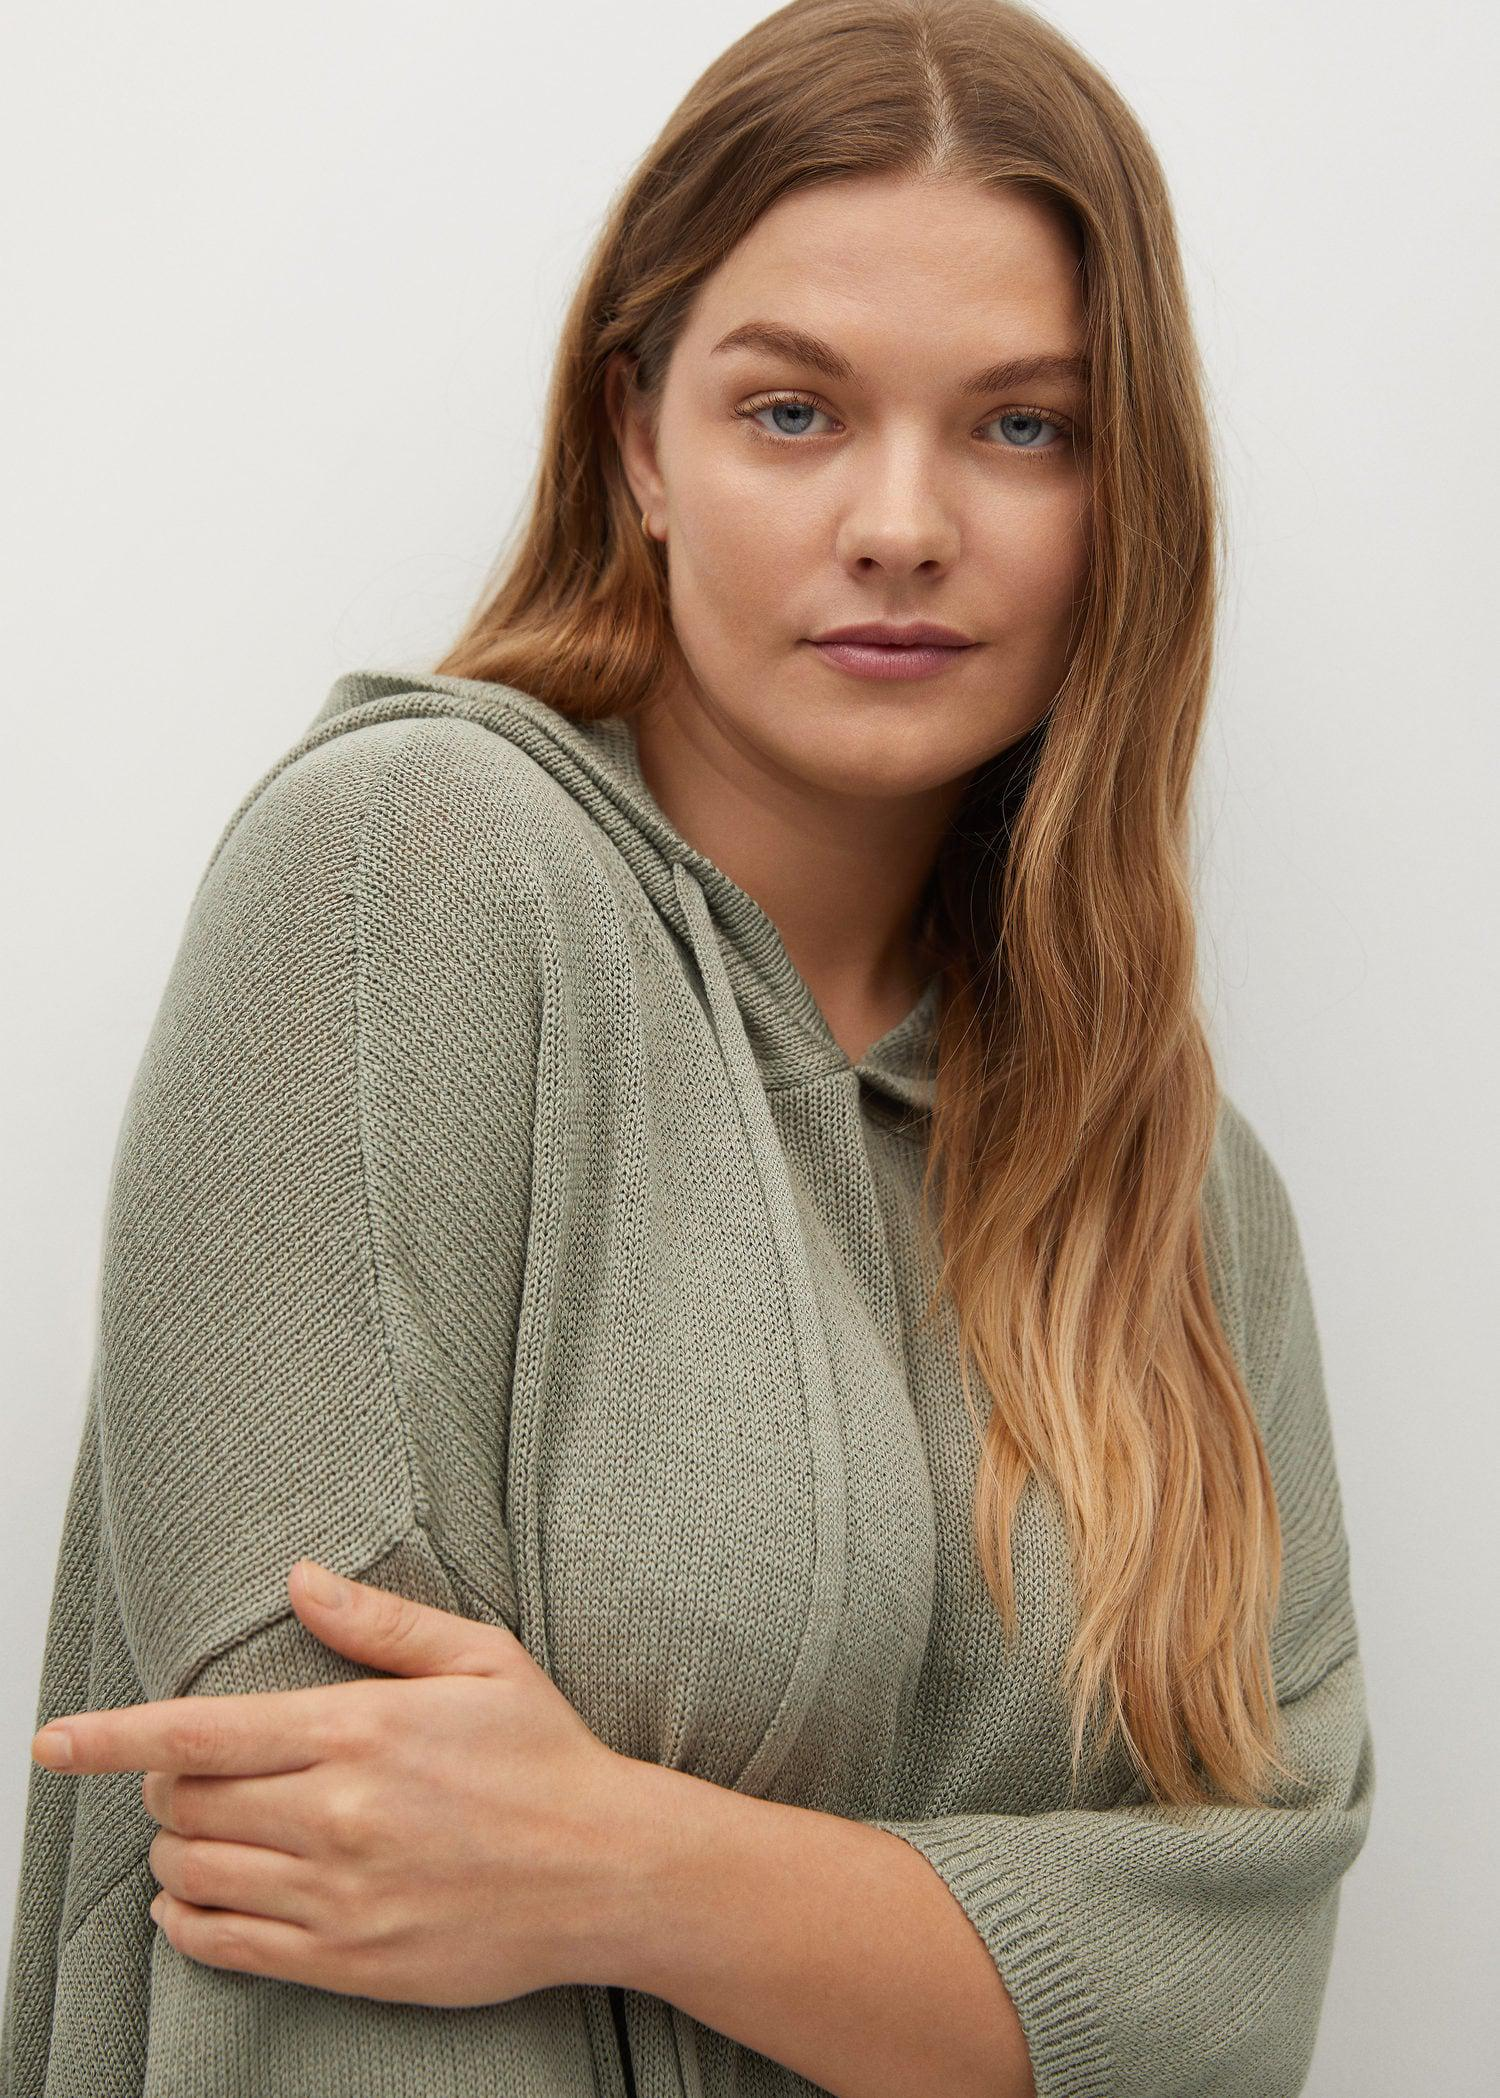 Oversized hooded sweater 3